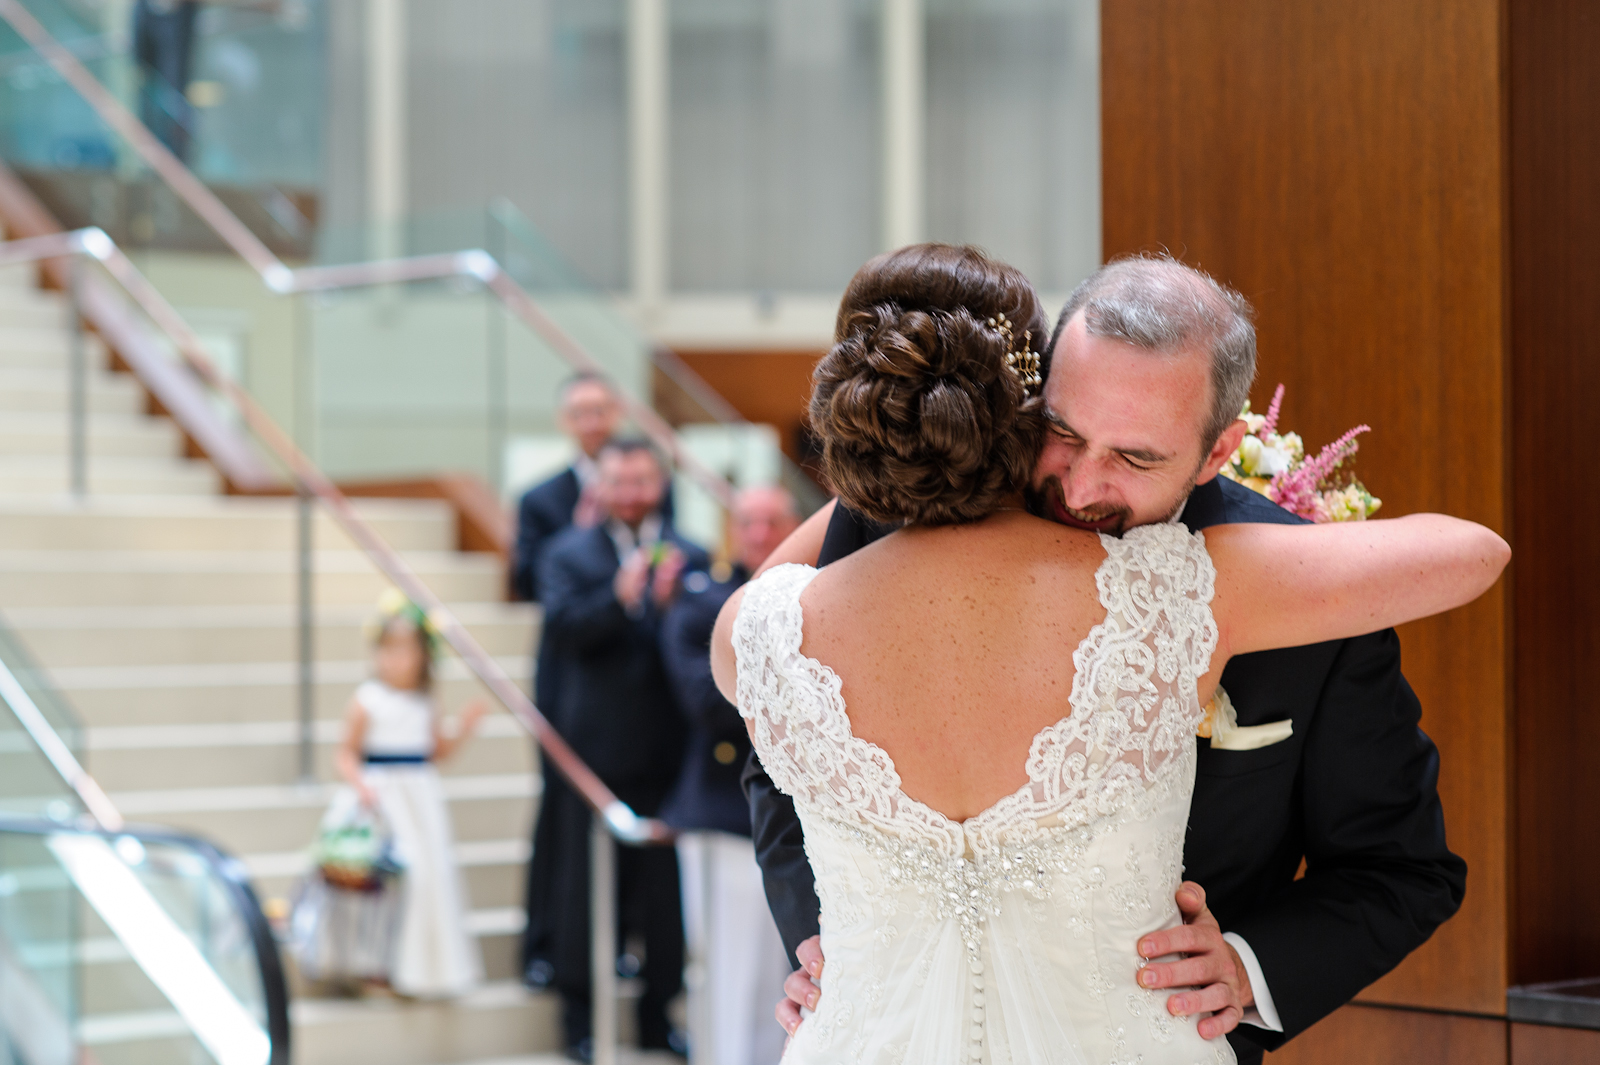 wedding photography dc photographer - district of columbia photography weddingphoto 2012_-15.jpg